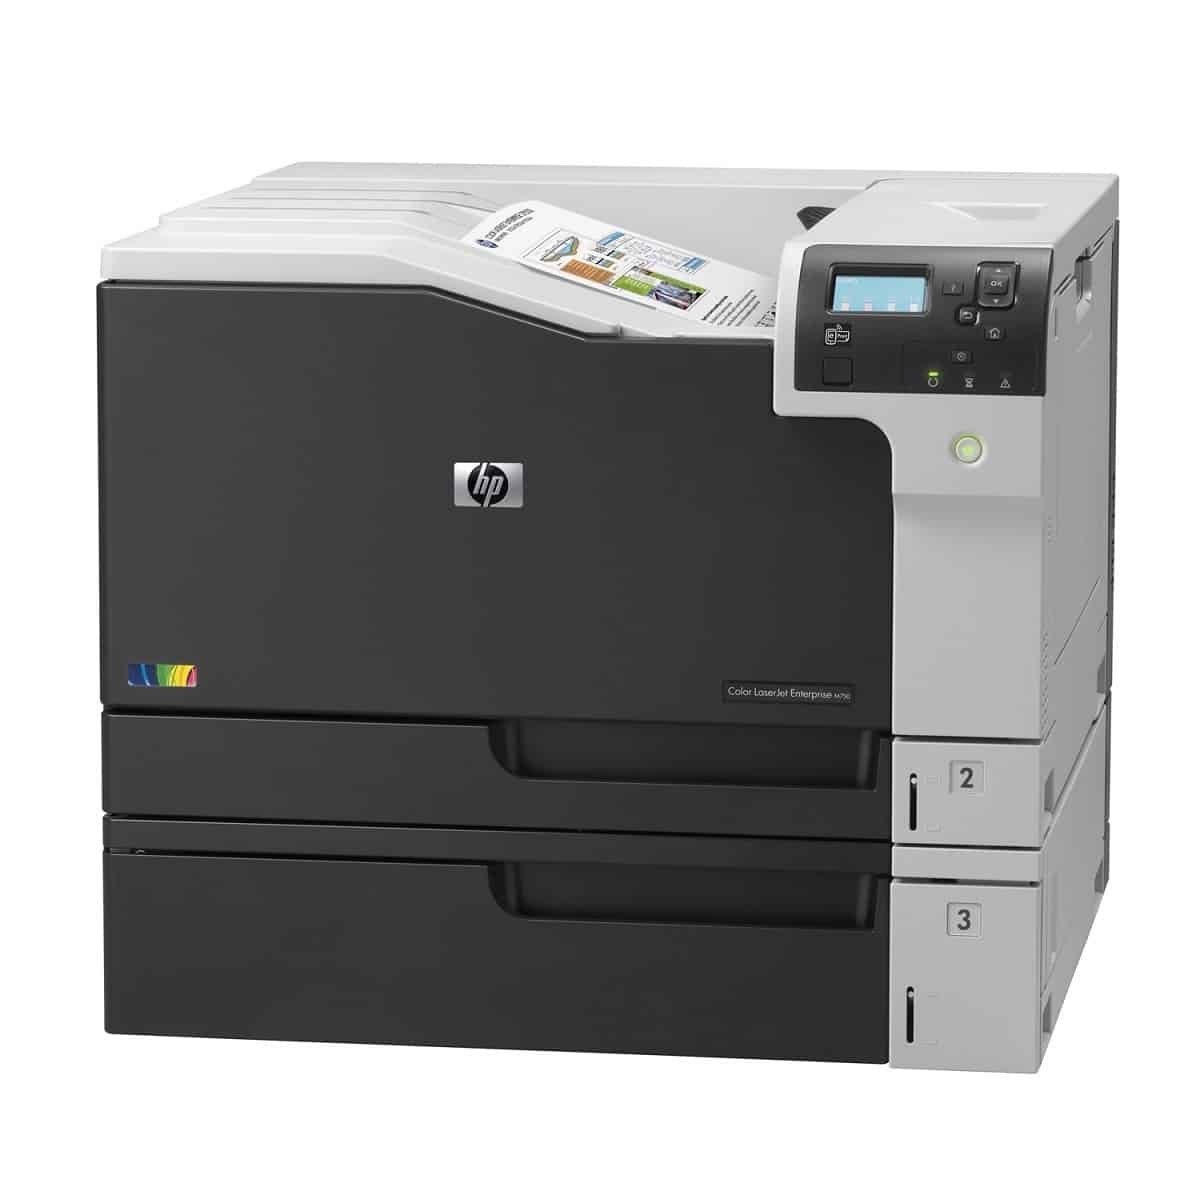 Máy in màu Hp Color LaserJet Enterprise M750n